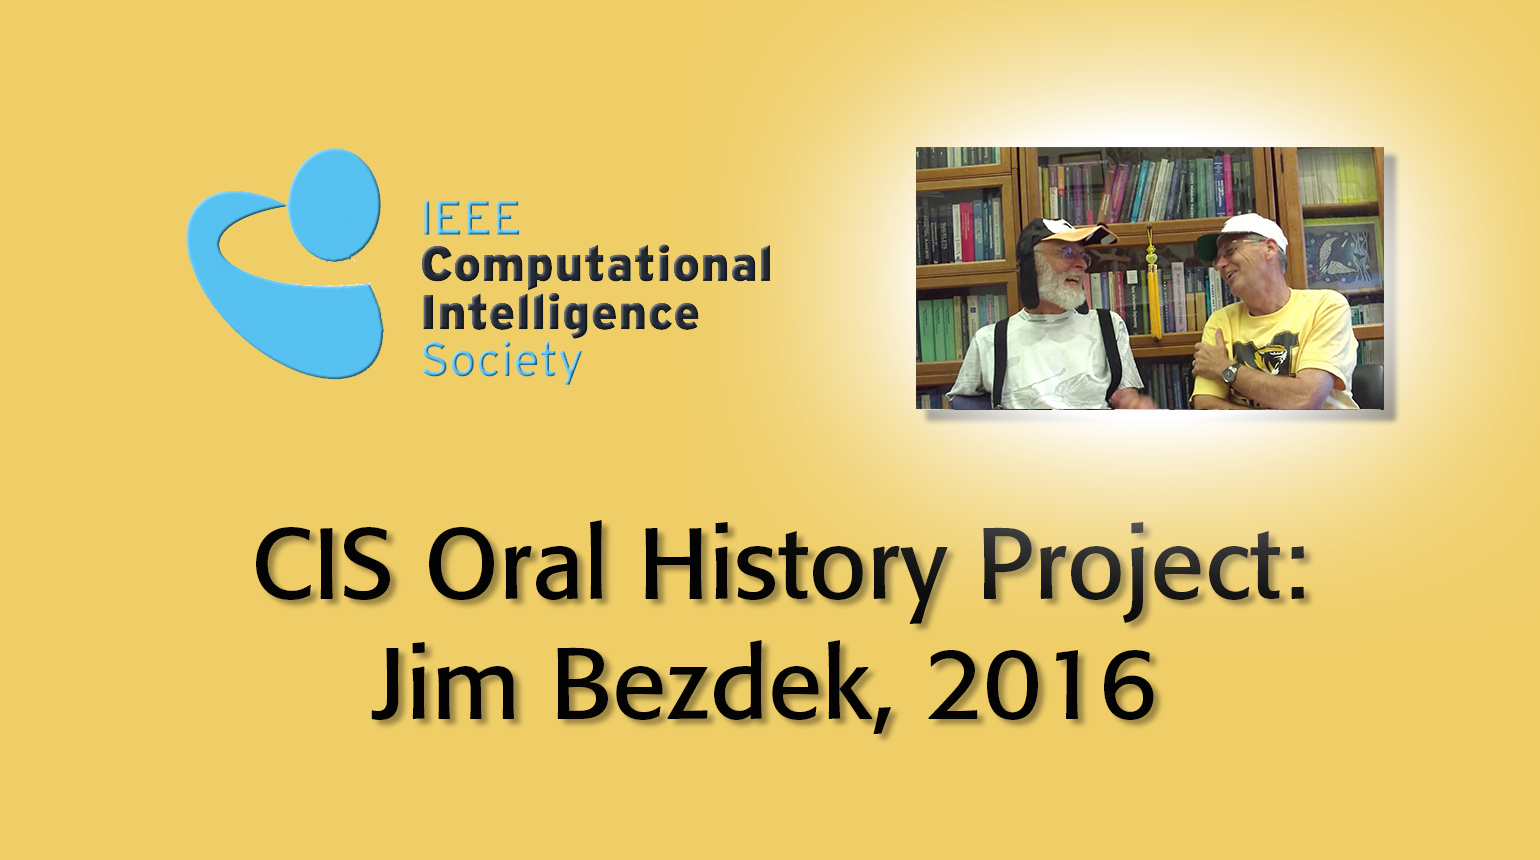 Interview with Jim Bezdek, 2016: CIS Oral History Project